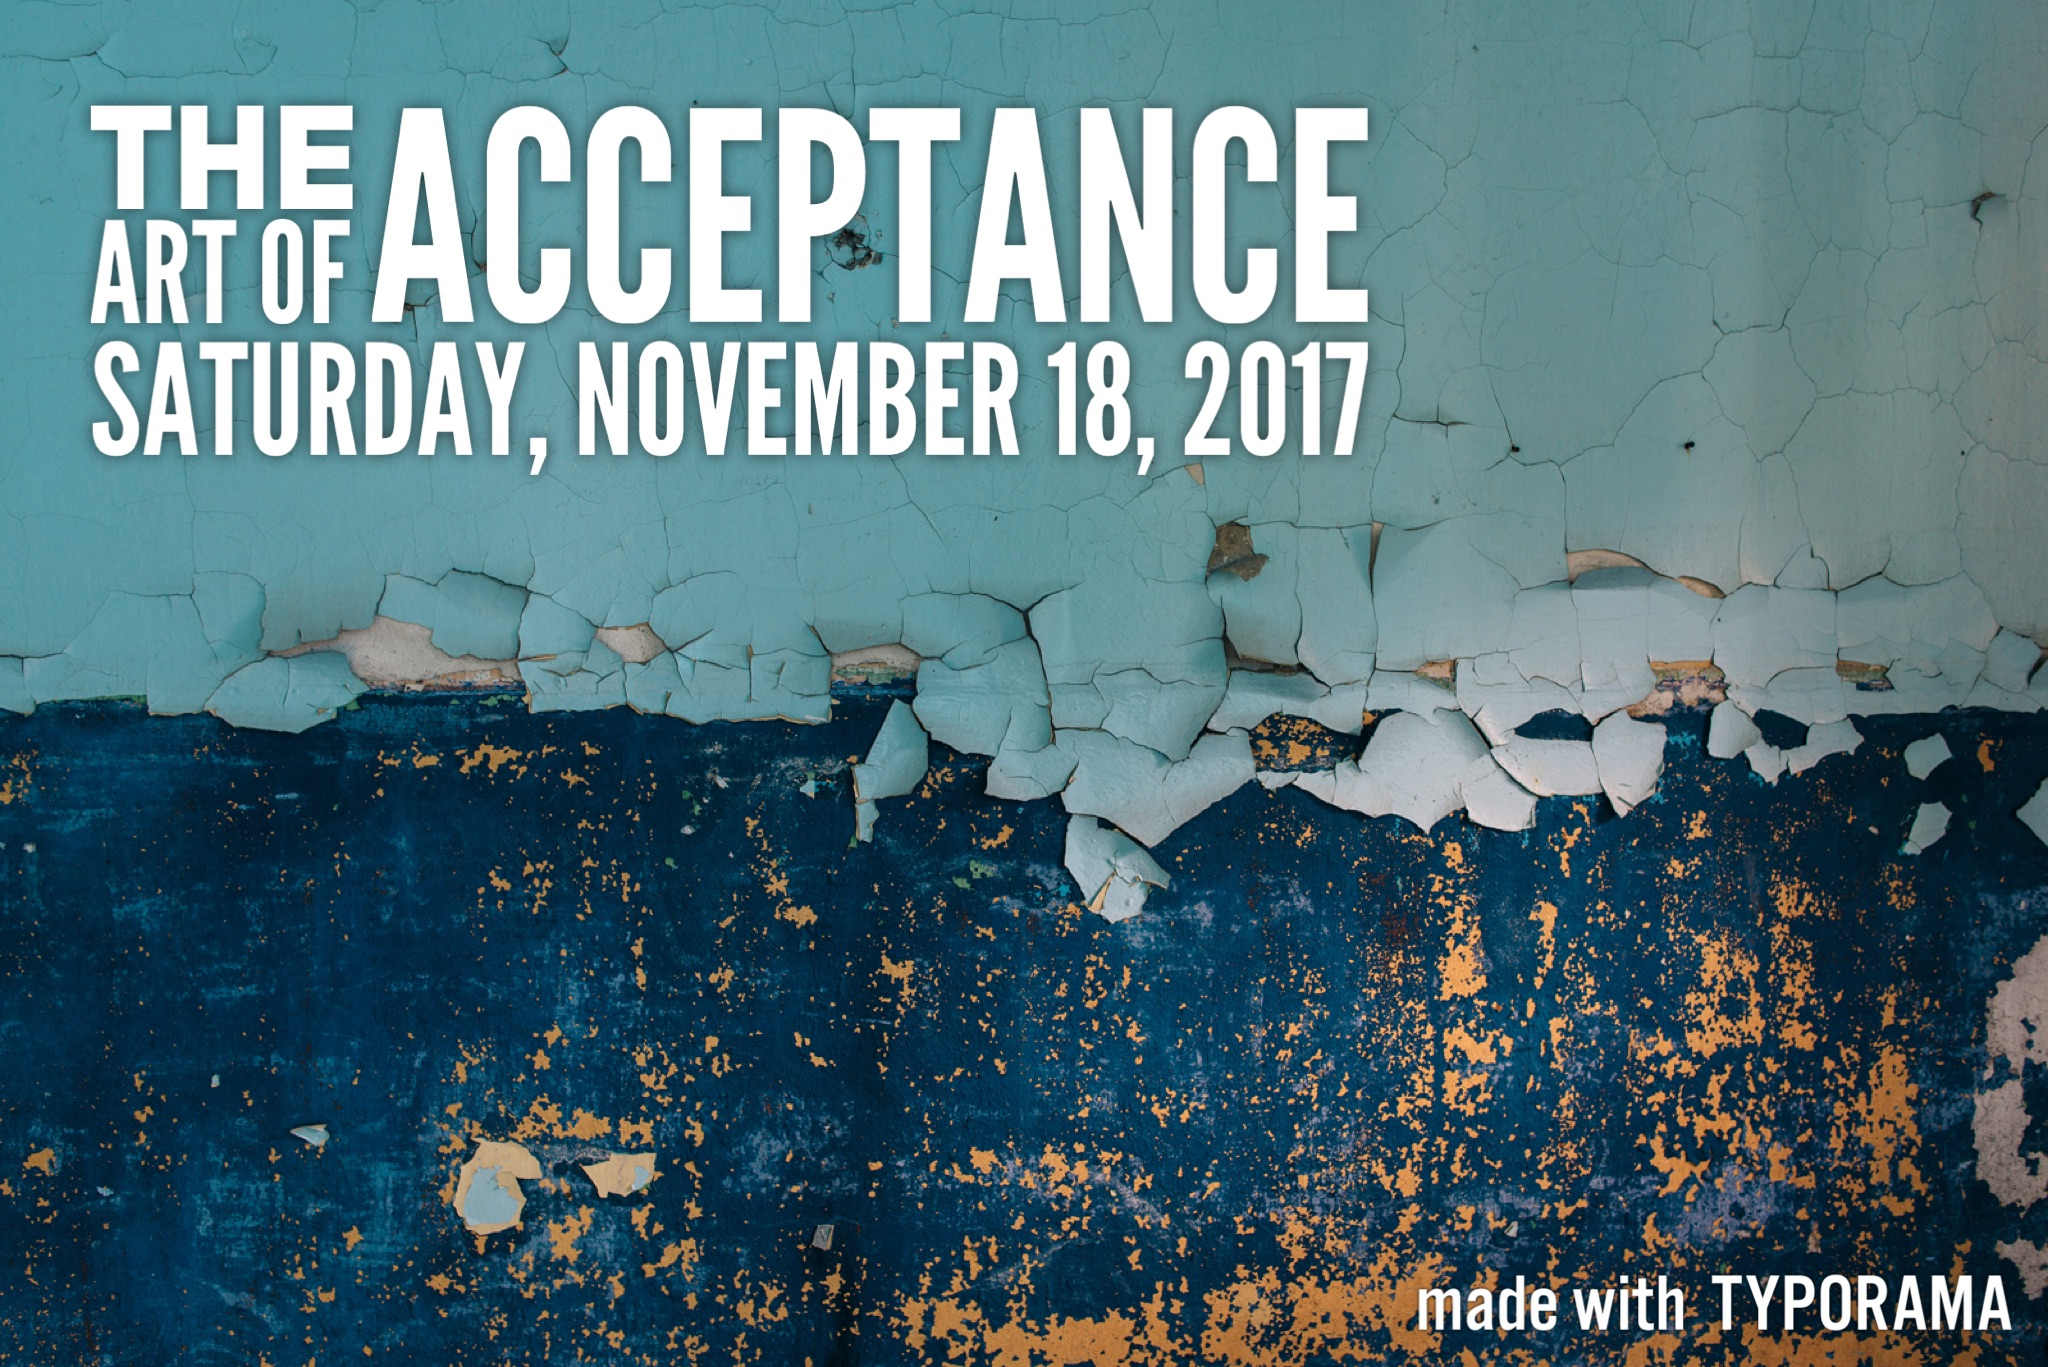 POSTPONED – The Art of Acceptance